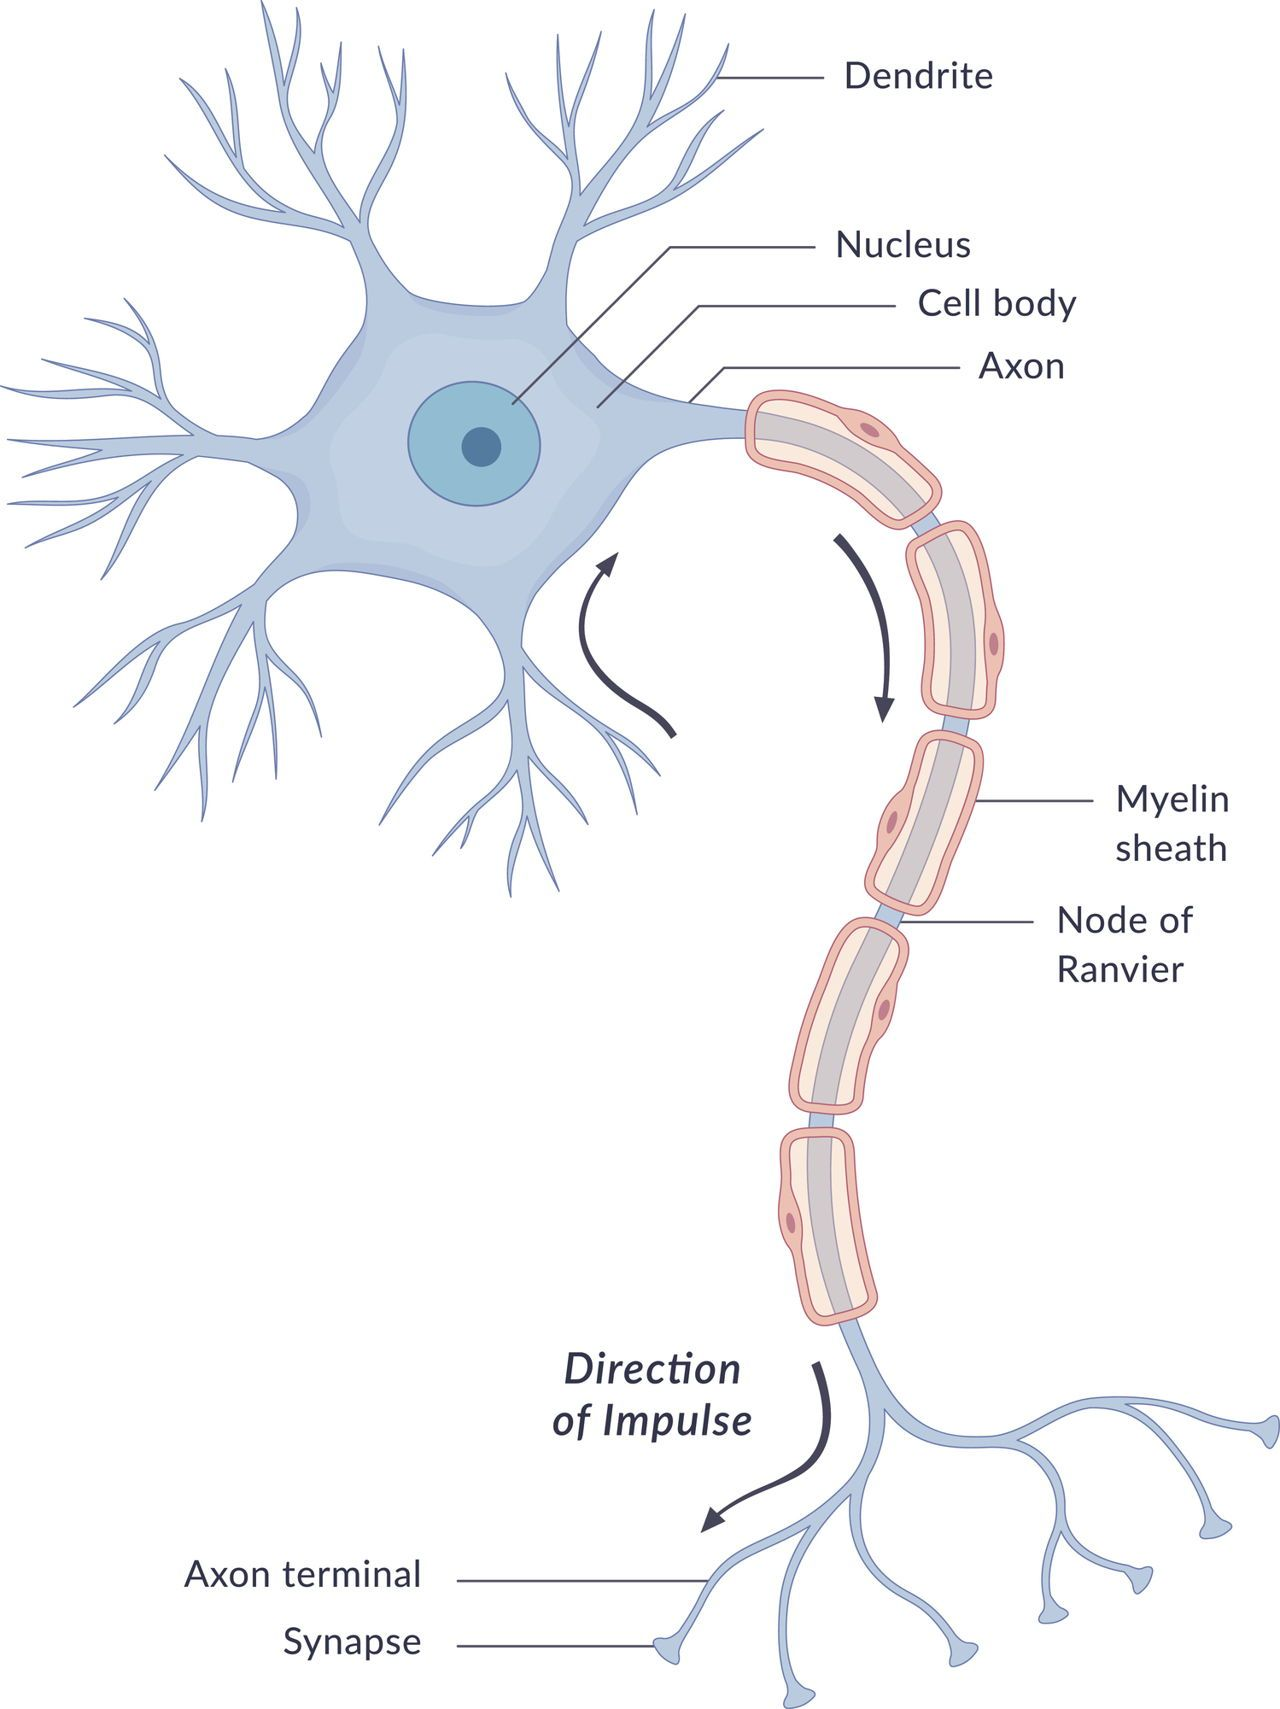 hight resolution of neuron diagram nervous system neuron diagram nervous system nervous system diagram full neorns